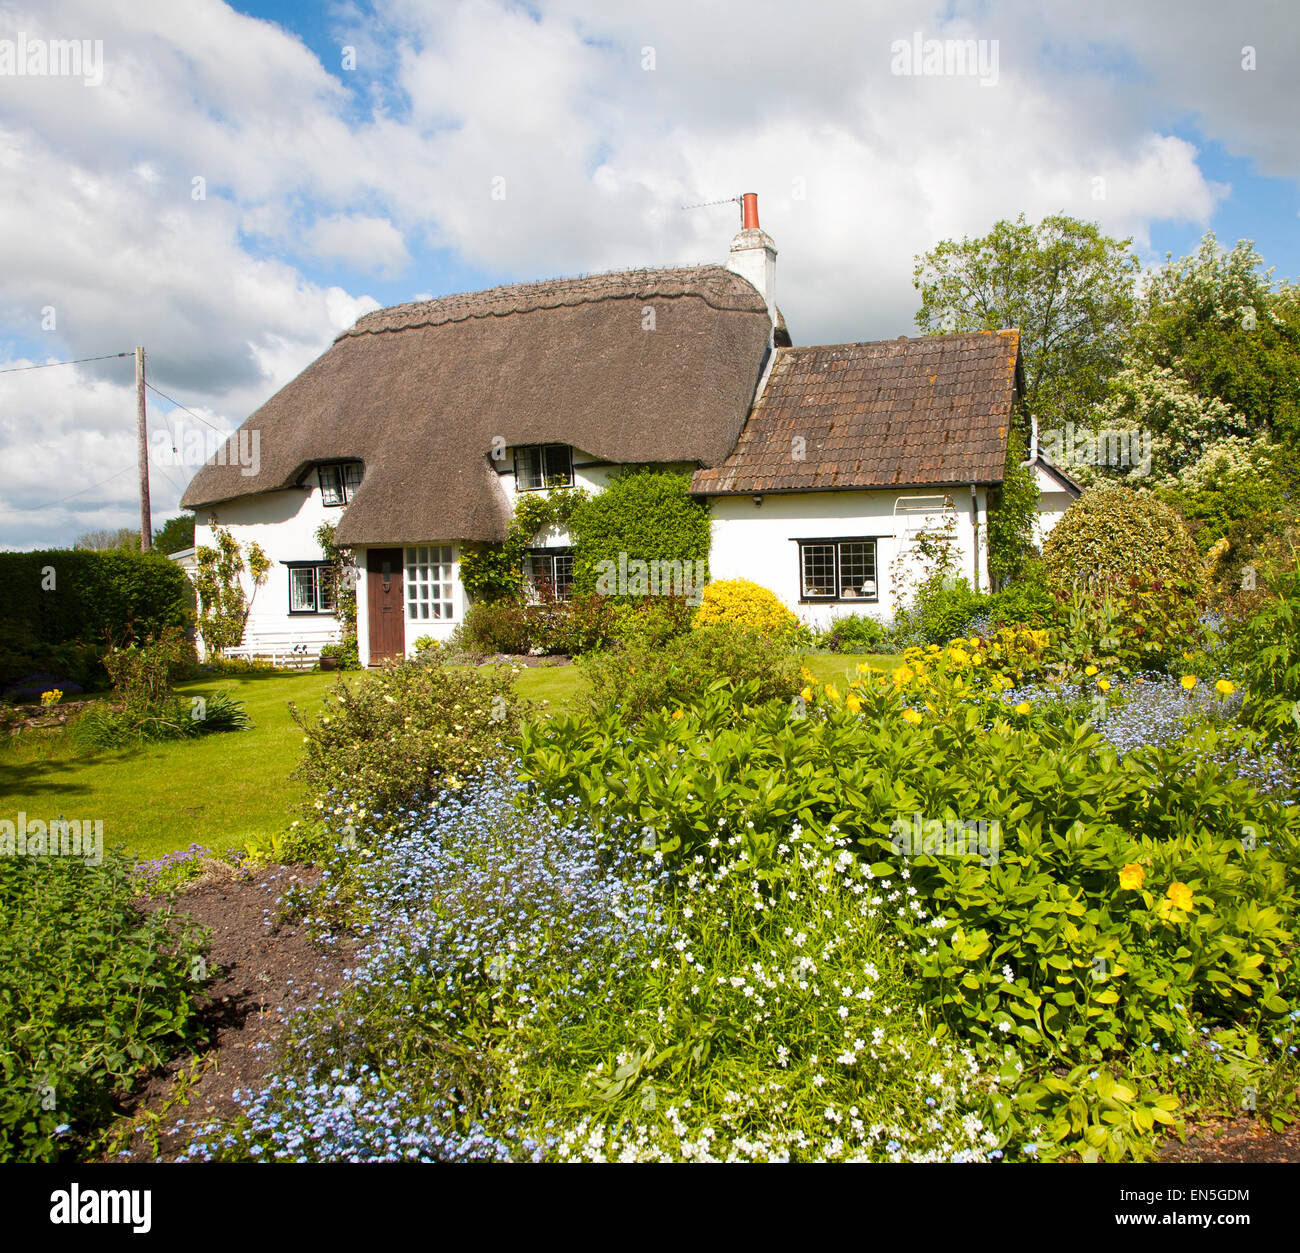 Property Released pretty detached country cottage and garden Cherhill, Wiltshire, England, UK - Stock Image